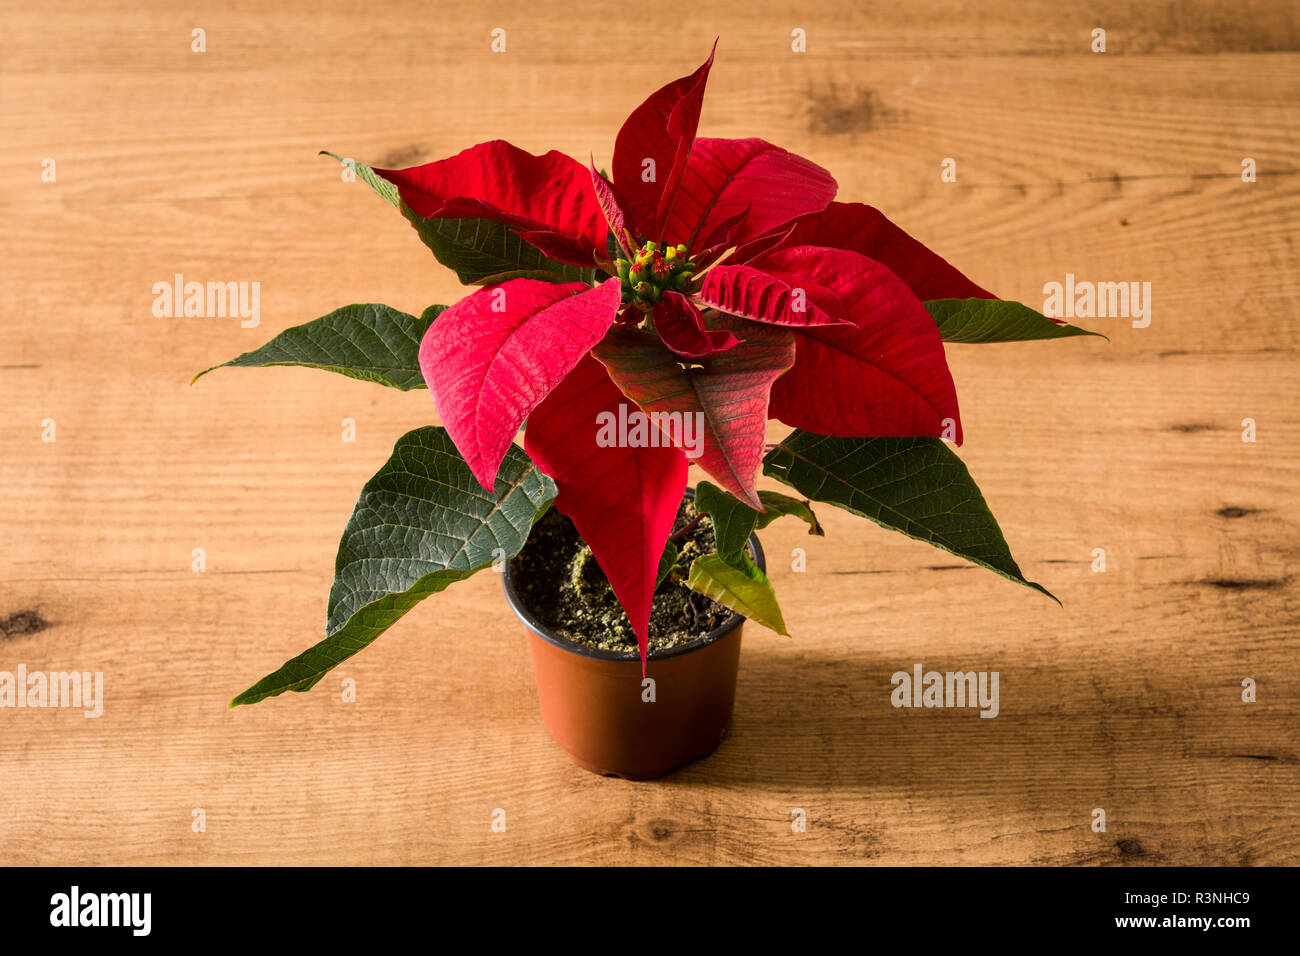 Christmas poinsettia flower on wooden table. - Stock Image